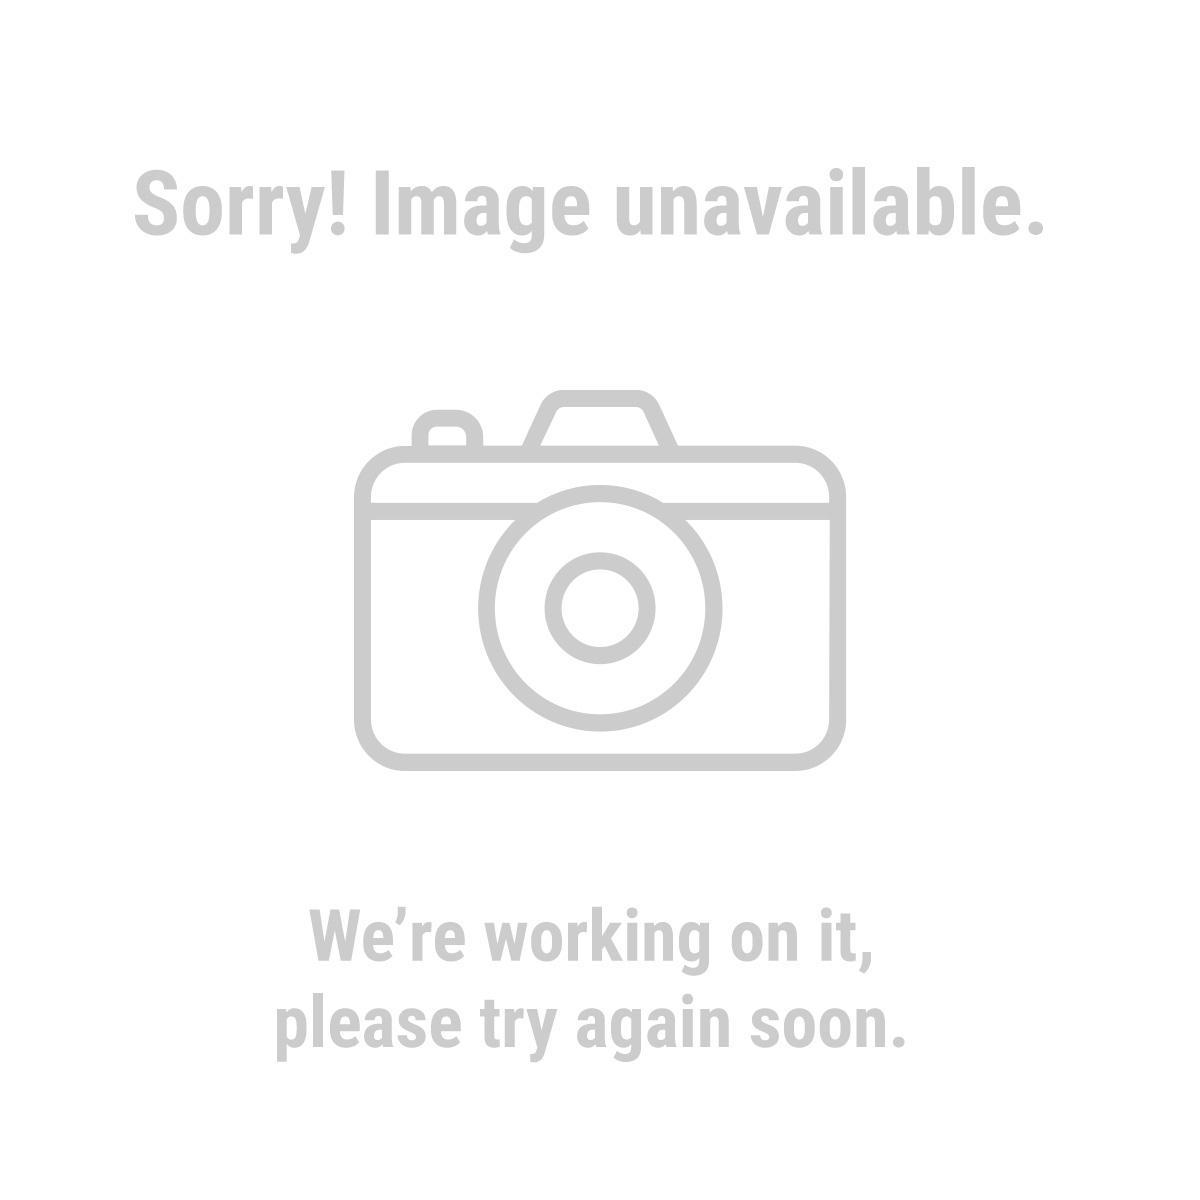 HFT 60232 2 Piece Microfiber Spa Polishing Towels